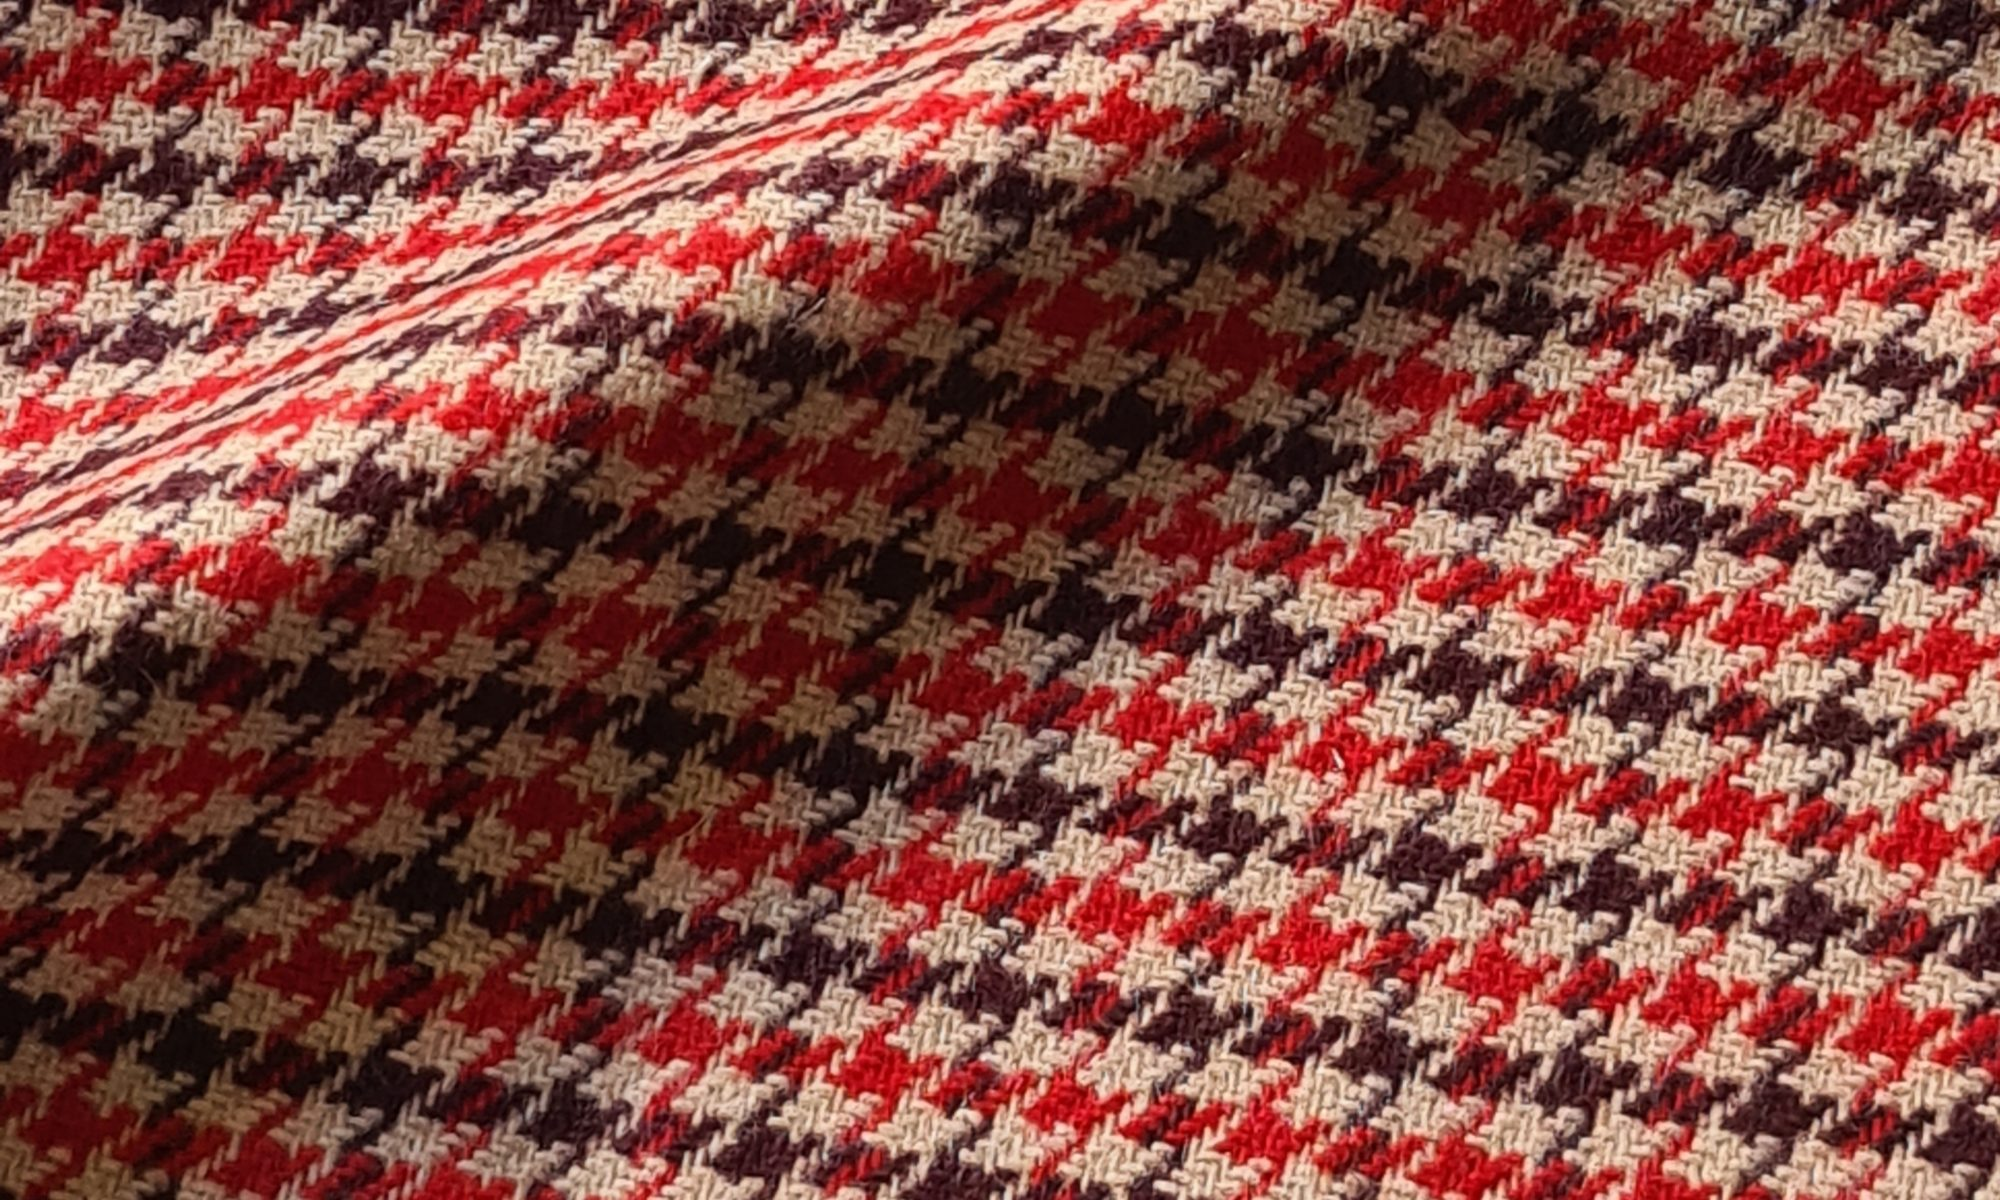 7625 glen check prince of wales red jacket WIDTH cm147 WEIGHT gr380 - gr258 square meter - COMPOSITION 20 Wool 50 Acrylic 25 Polyester - 7600mts